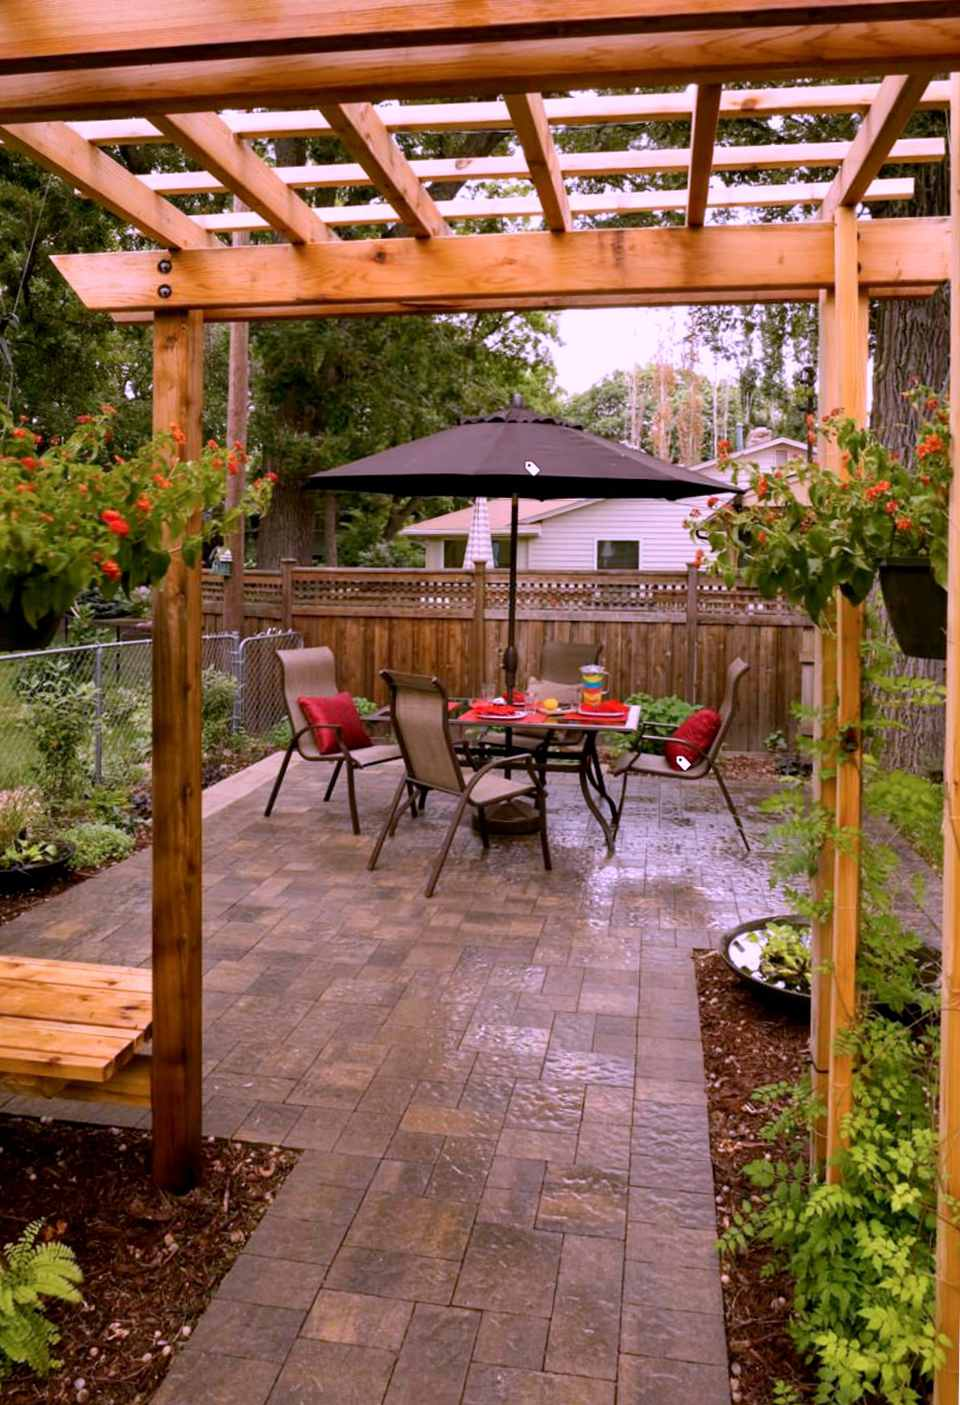 25 Perfect Patio Paver Design Ideas on Small Brick Patio Ideas id=15215